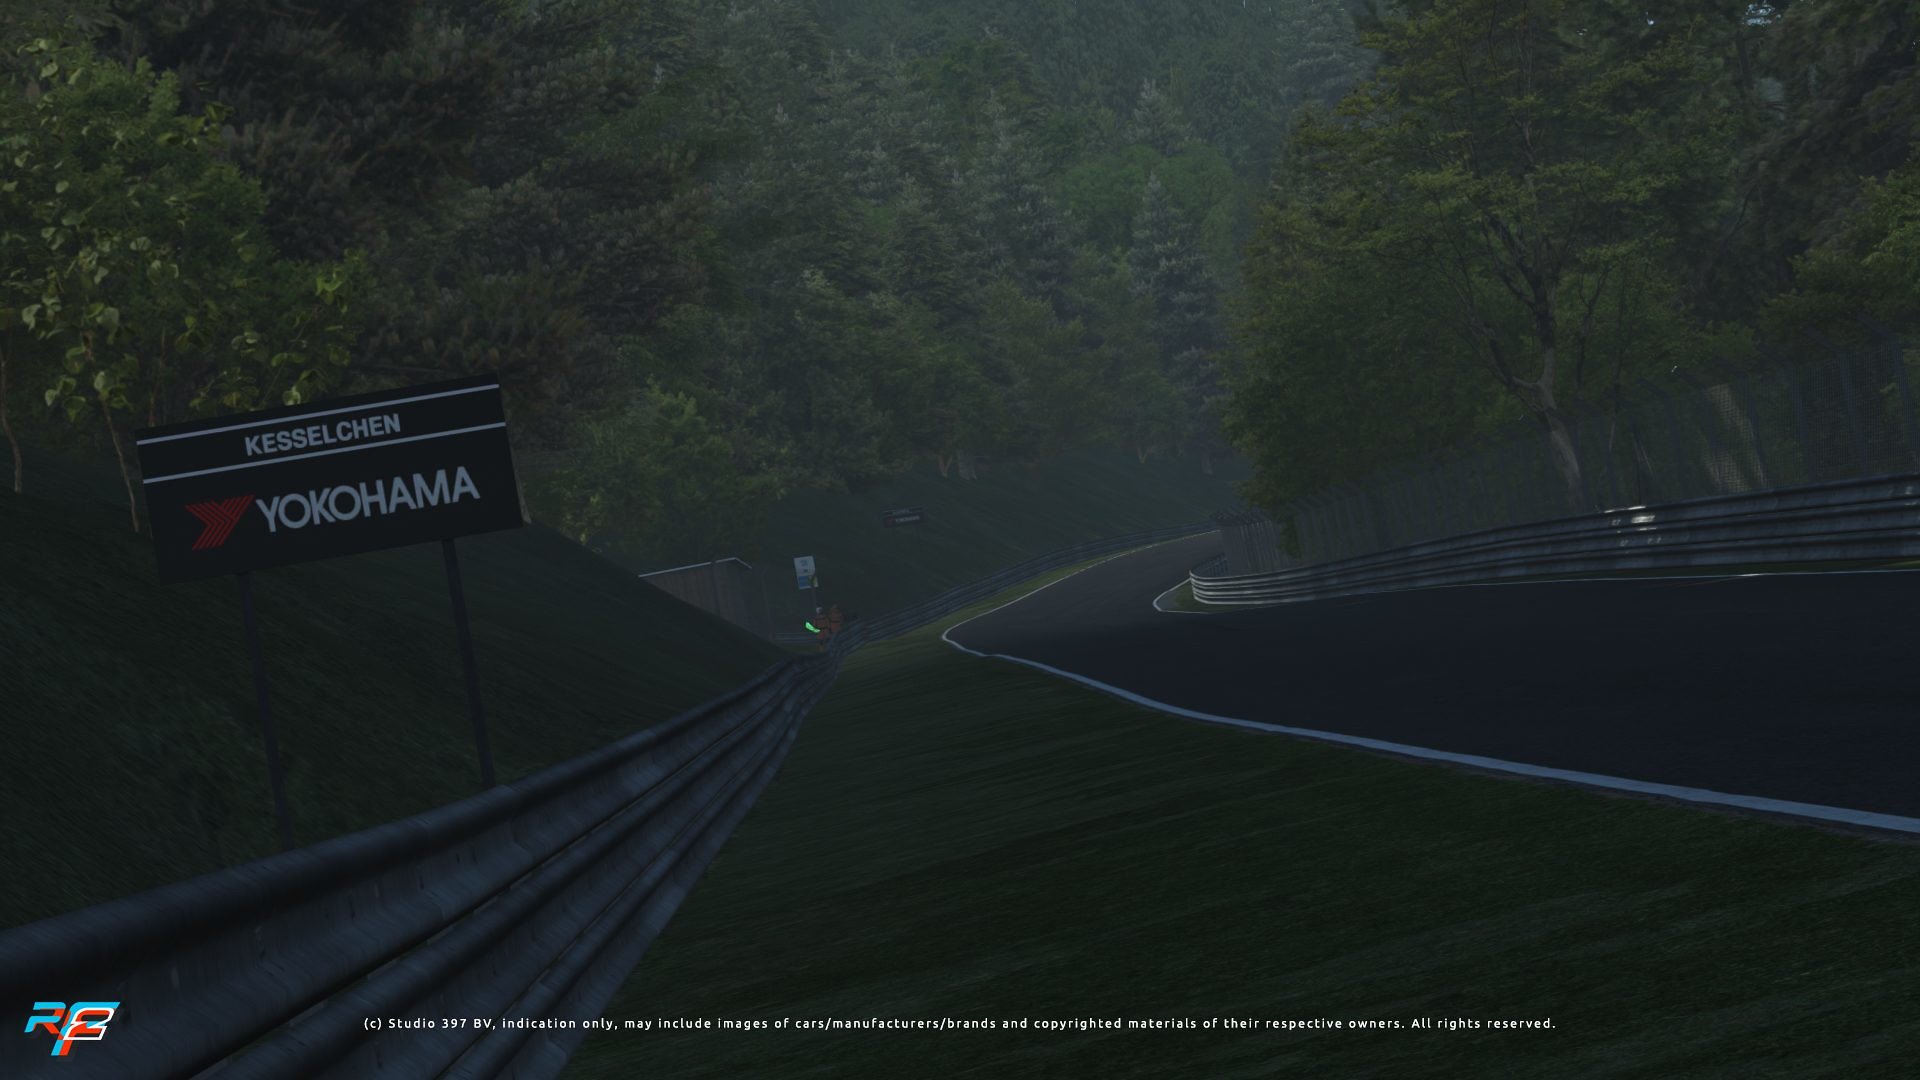 nordschleife_guide_17-1920x1080